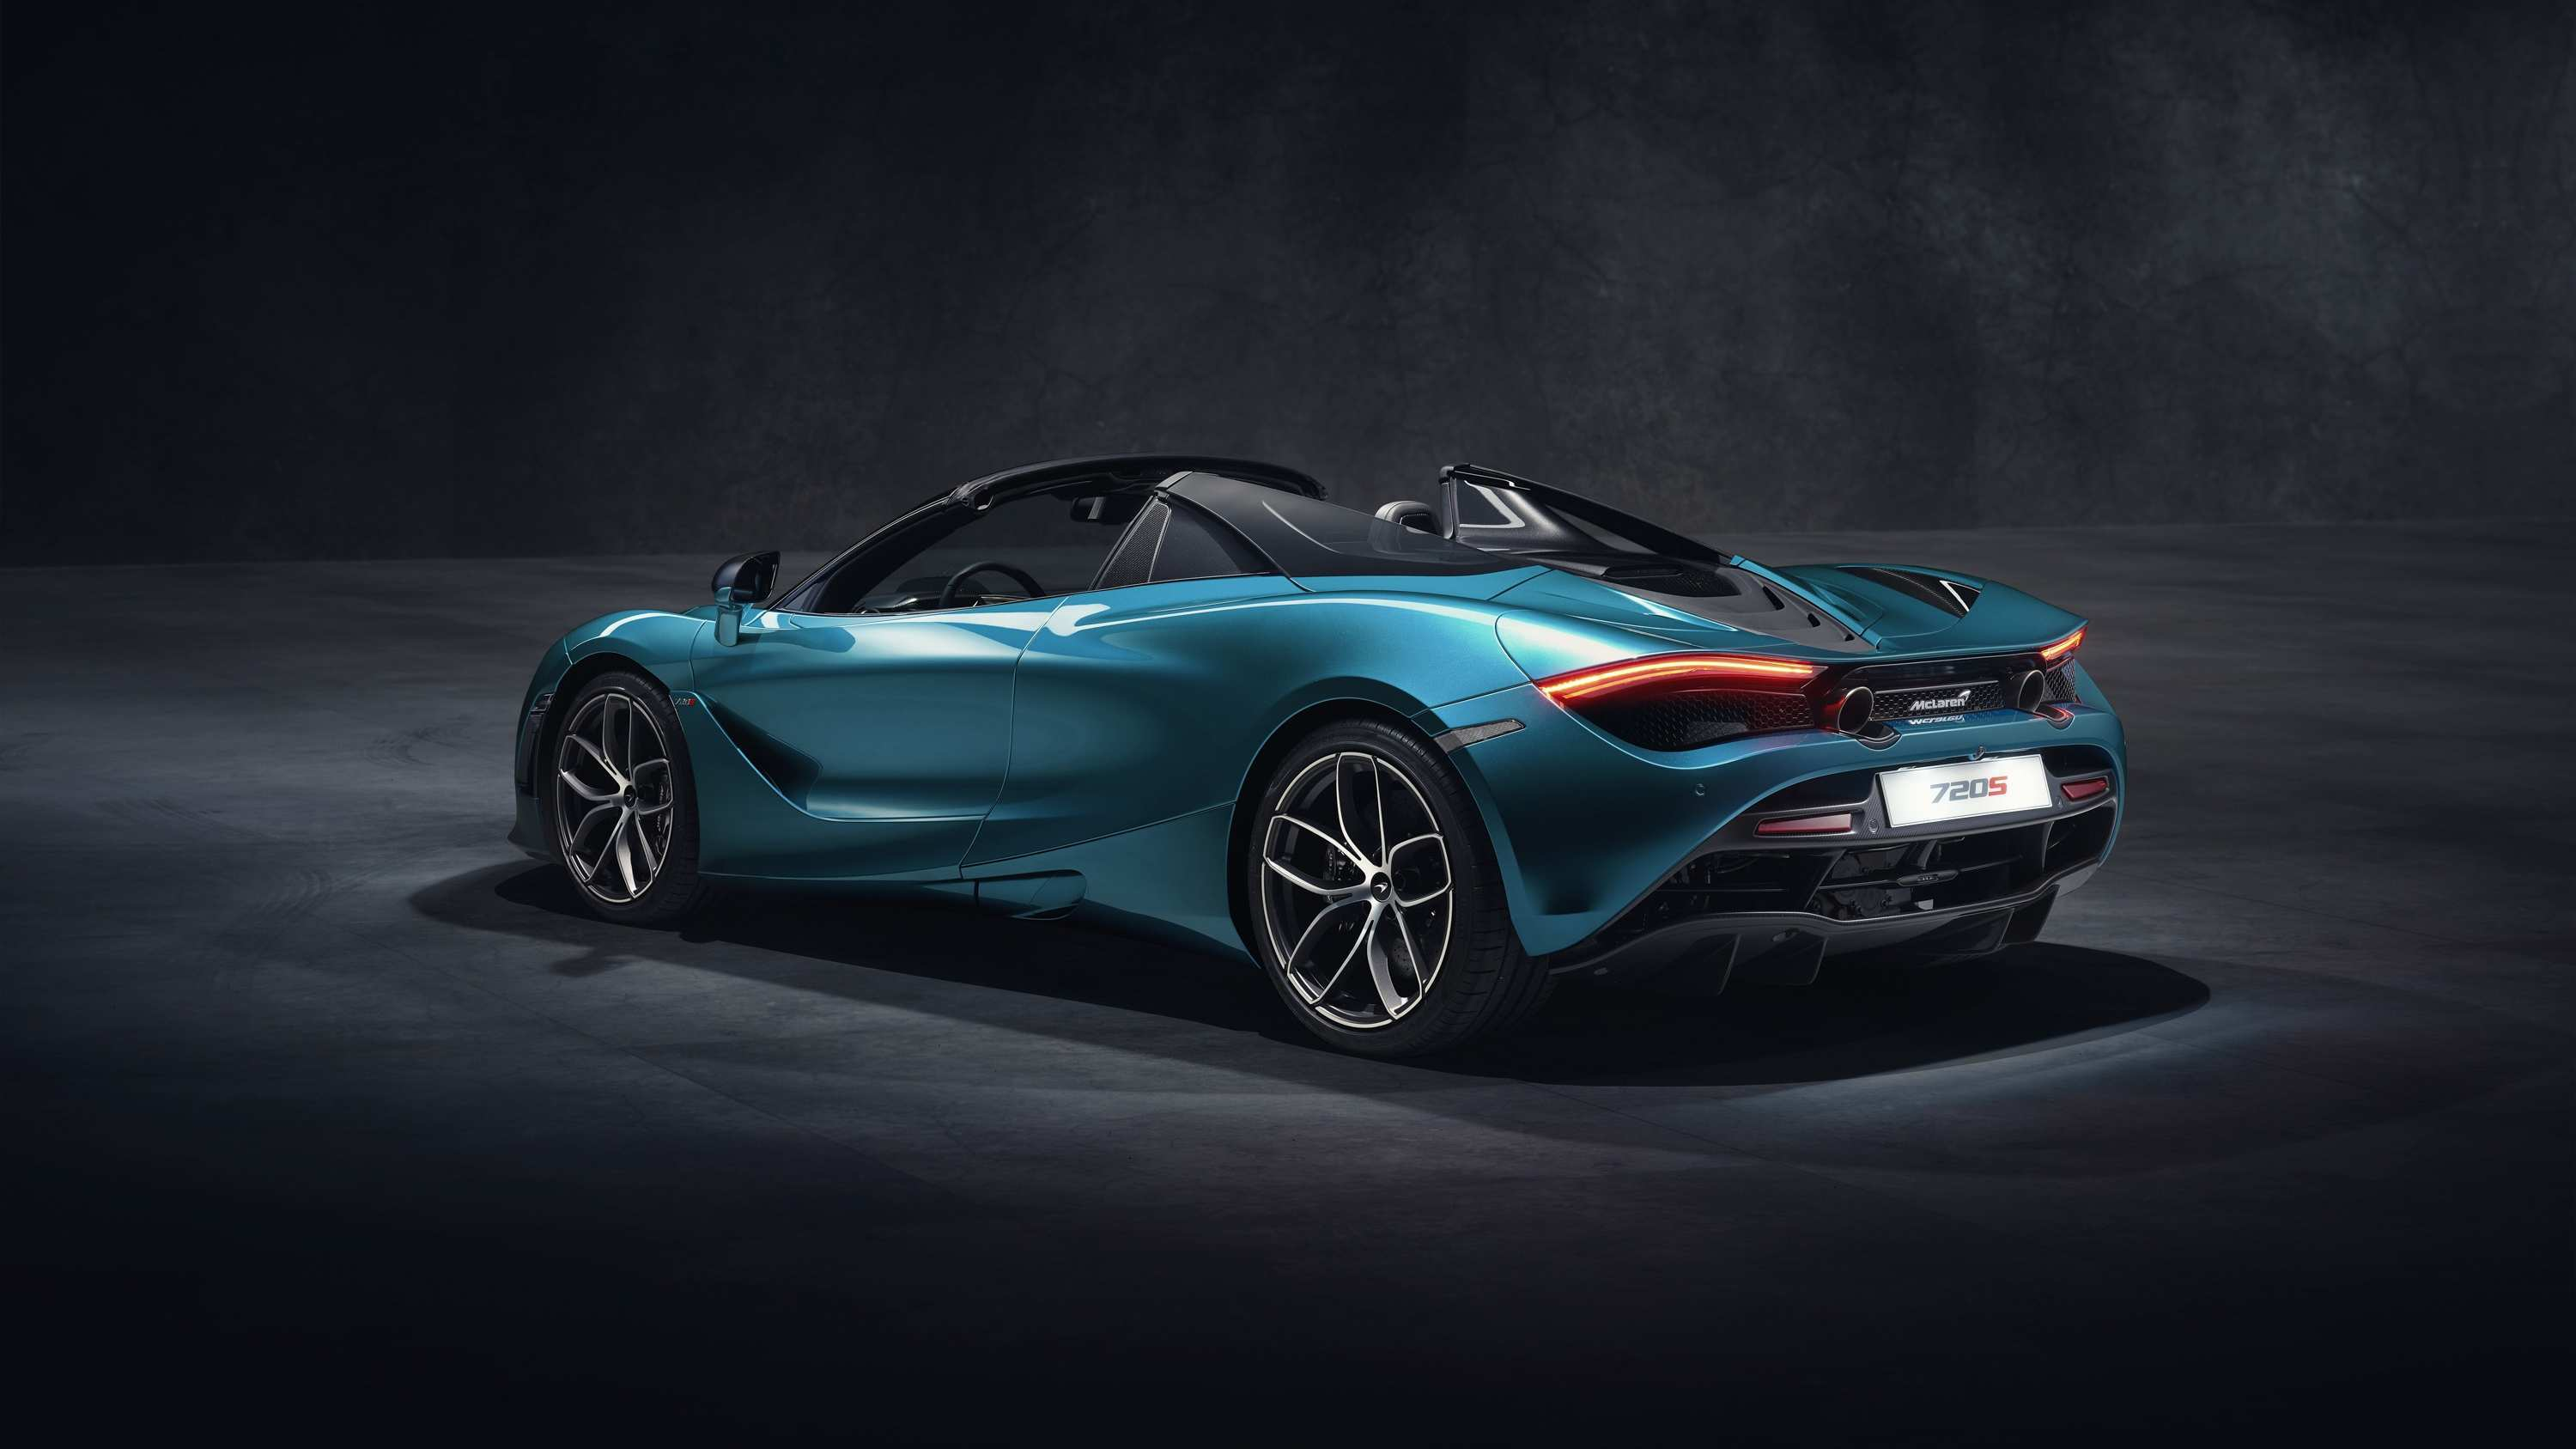 87 Concept of 2019 Mclaren Top Speed New Concept by 2019 Mclaren Top Speed